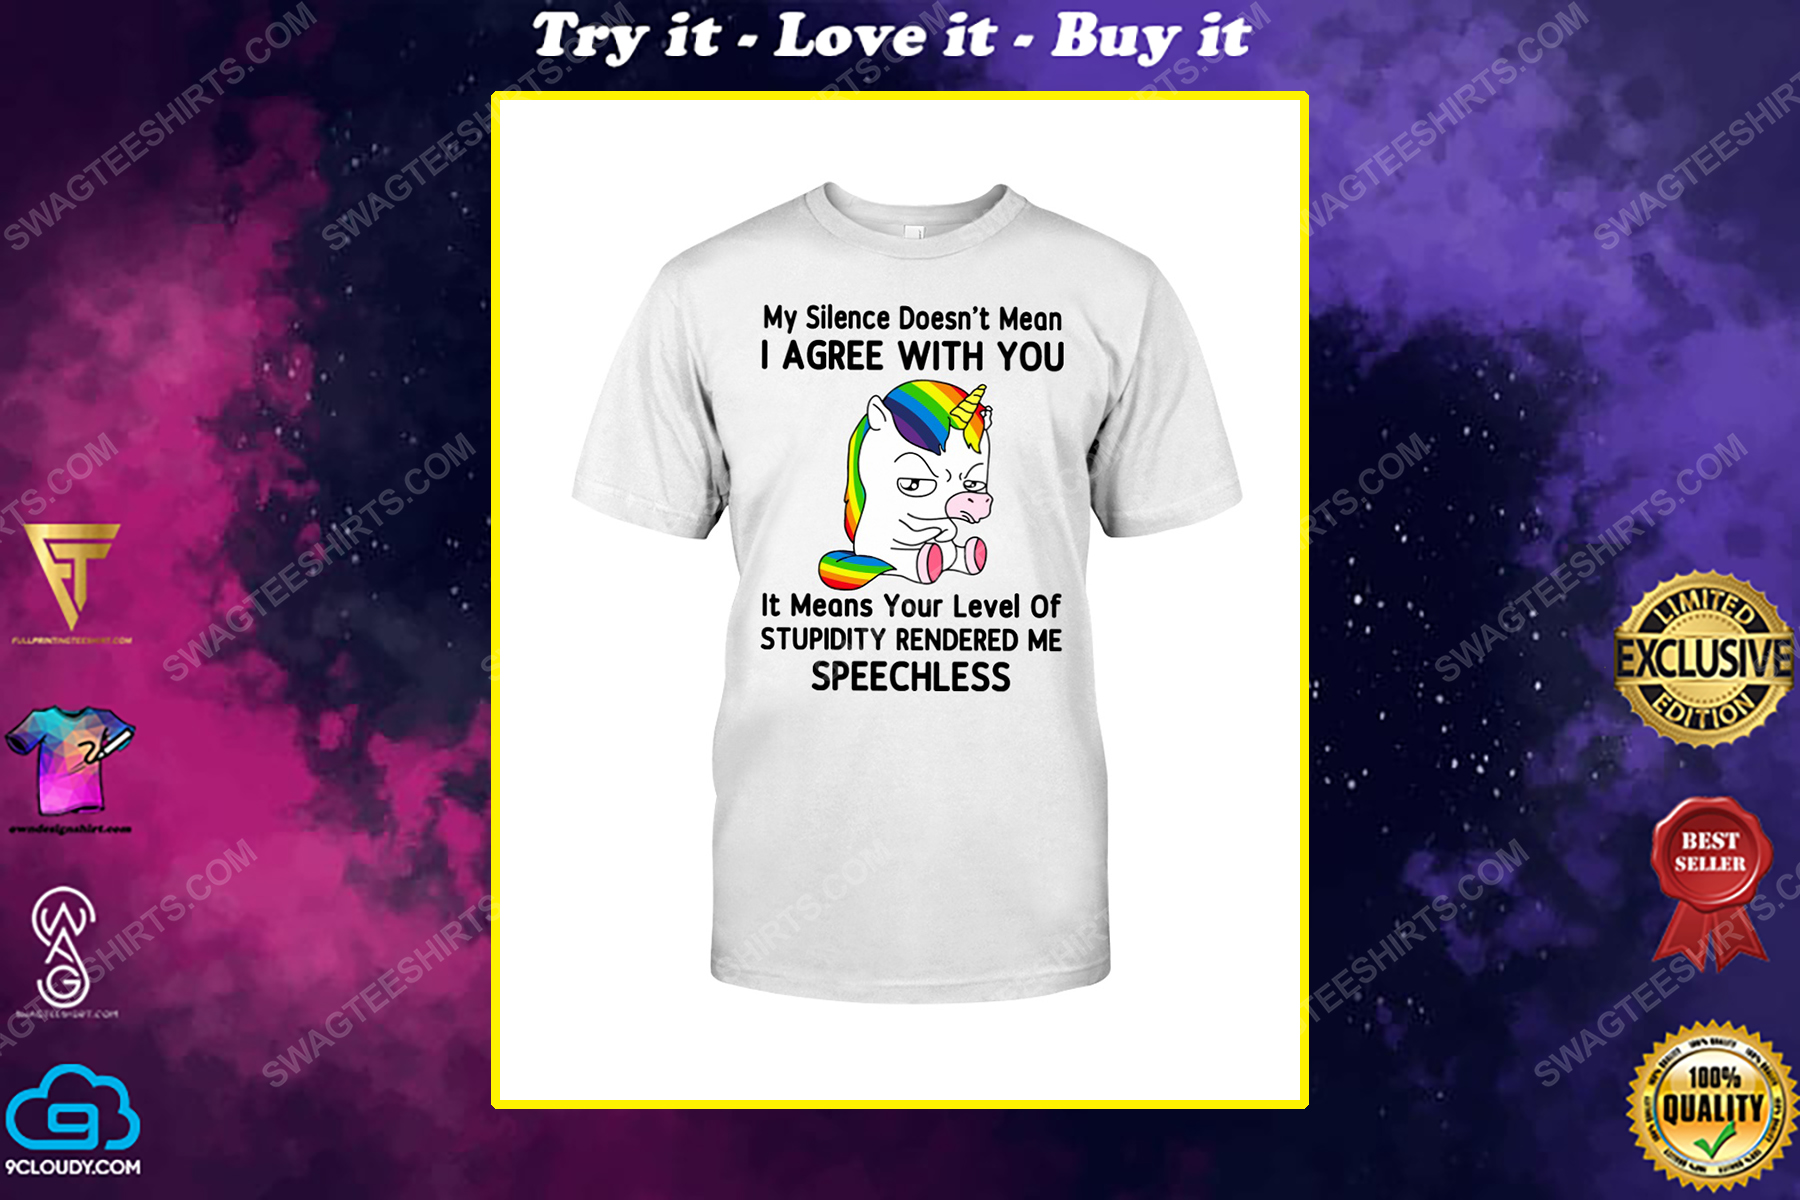 Unicorn my silence doesn't mean i agree with you shirt